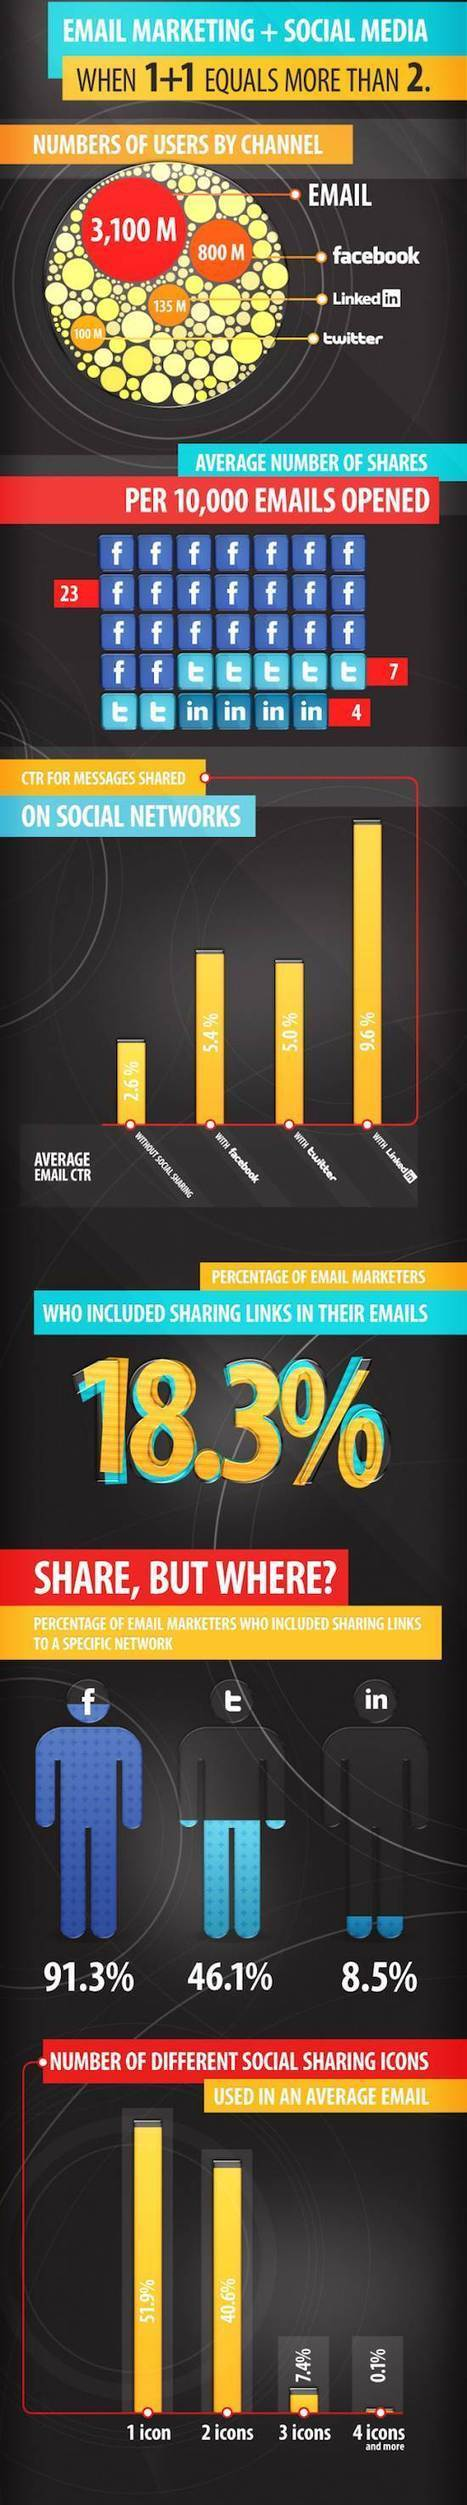 Social Sharing and Email Marketing - Infographic | Social Media for Etsy Sellers | Scoop.it